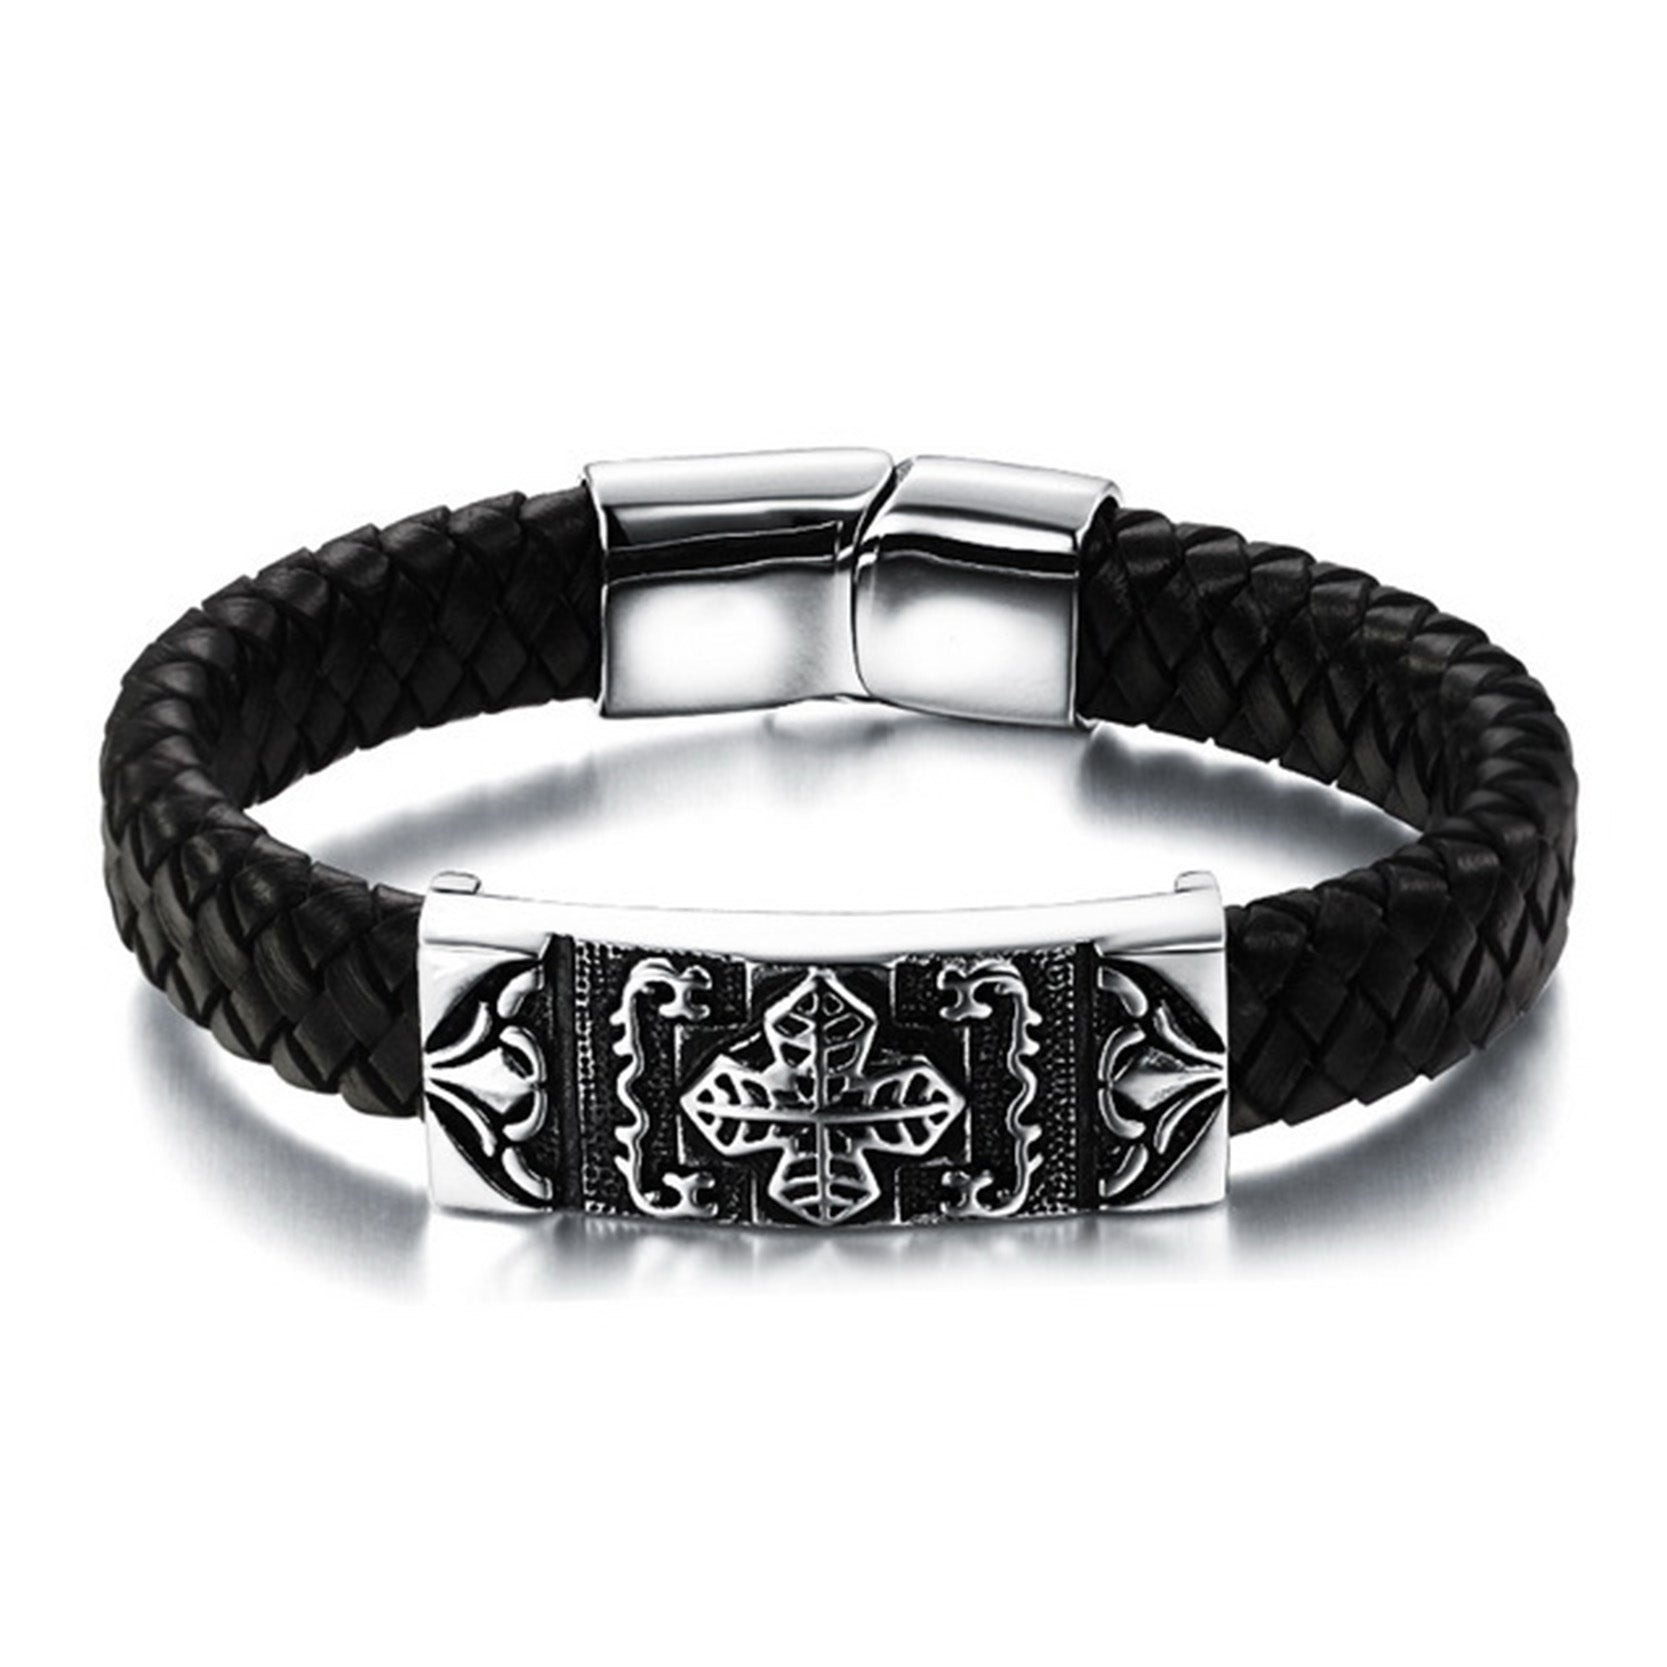 Stainless Steel Genuine Leather Men Bracelet - Valerian Boutique